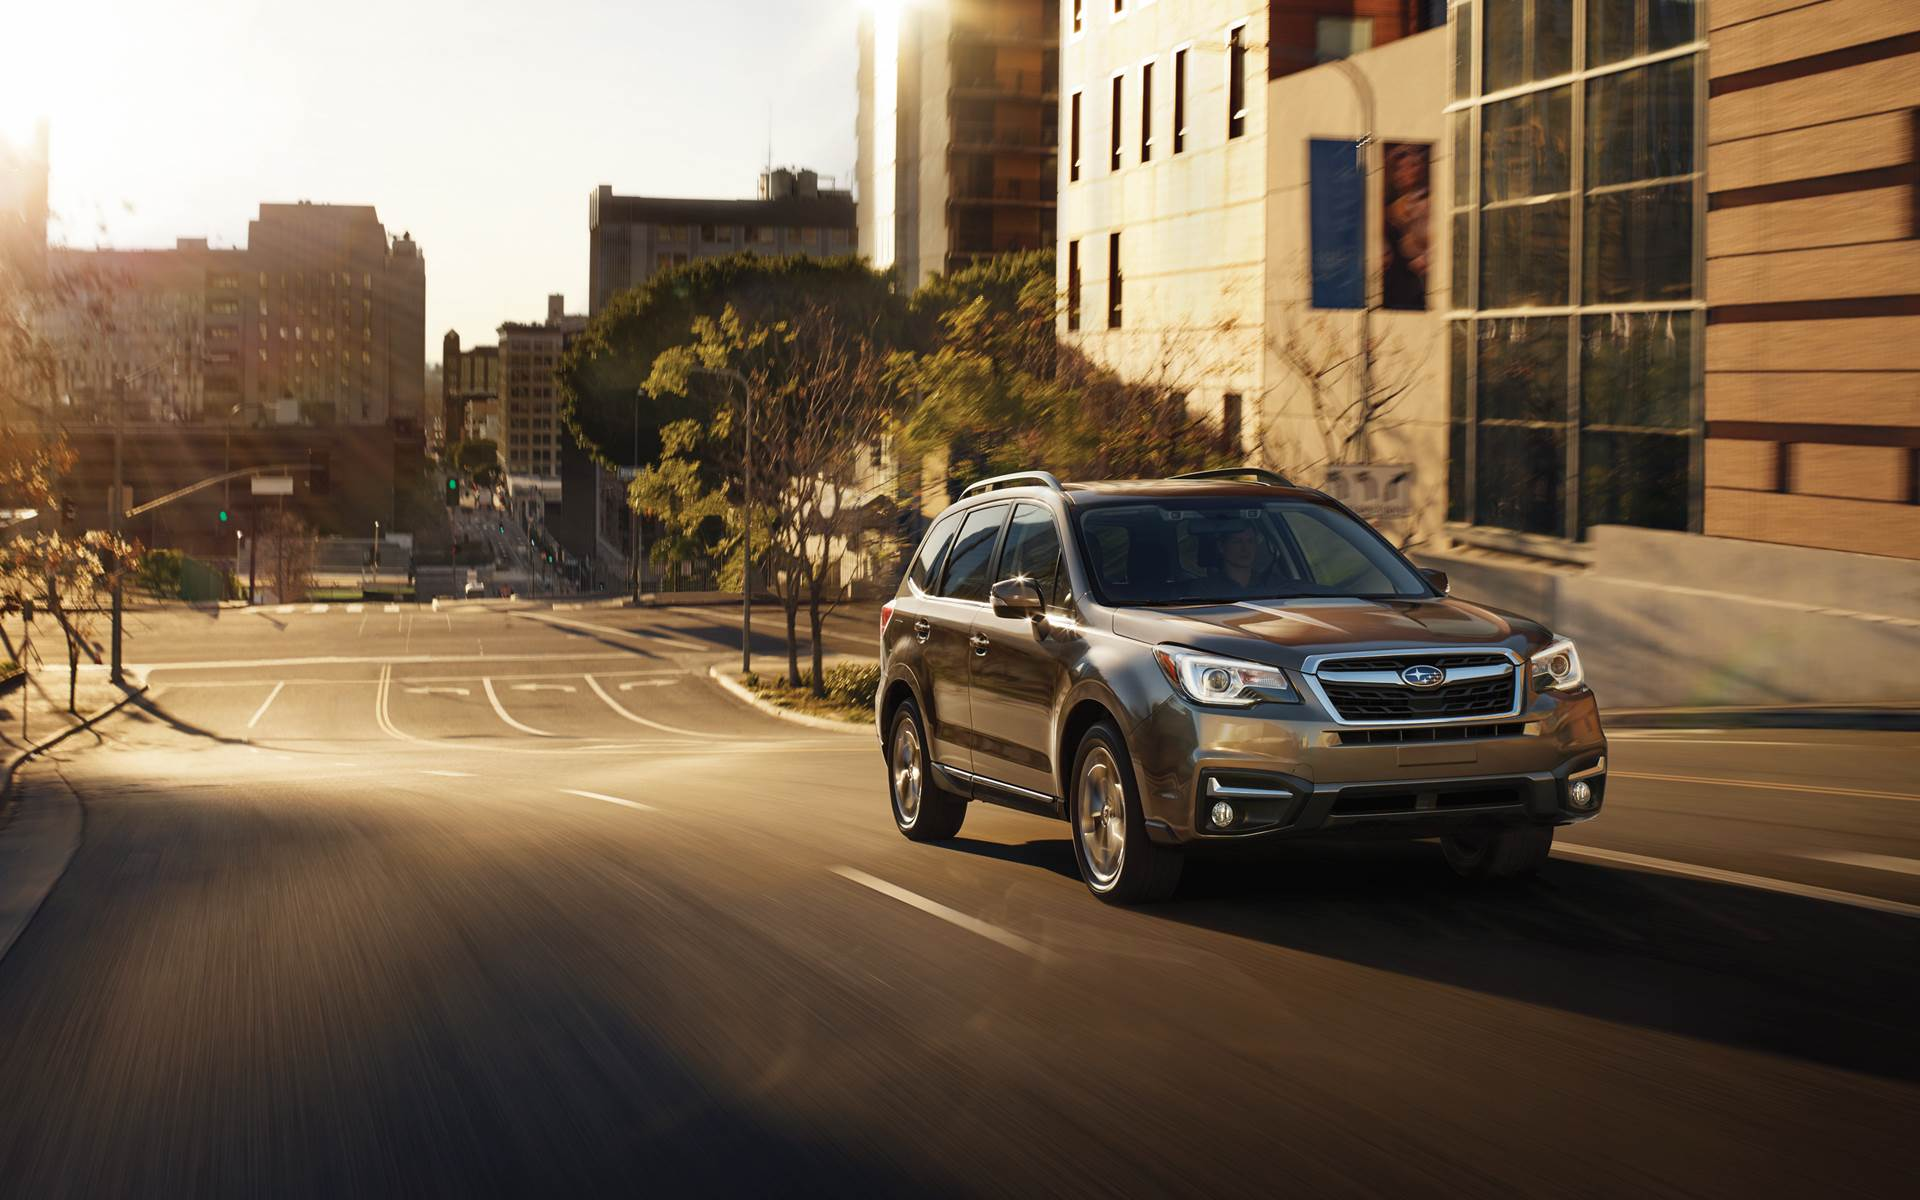 2019 Subaru Forester Front Side View In City On Road Hd Wallpaper